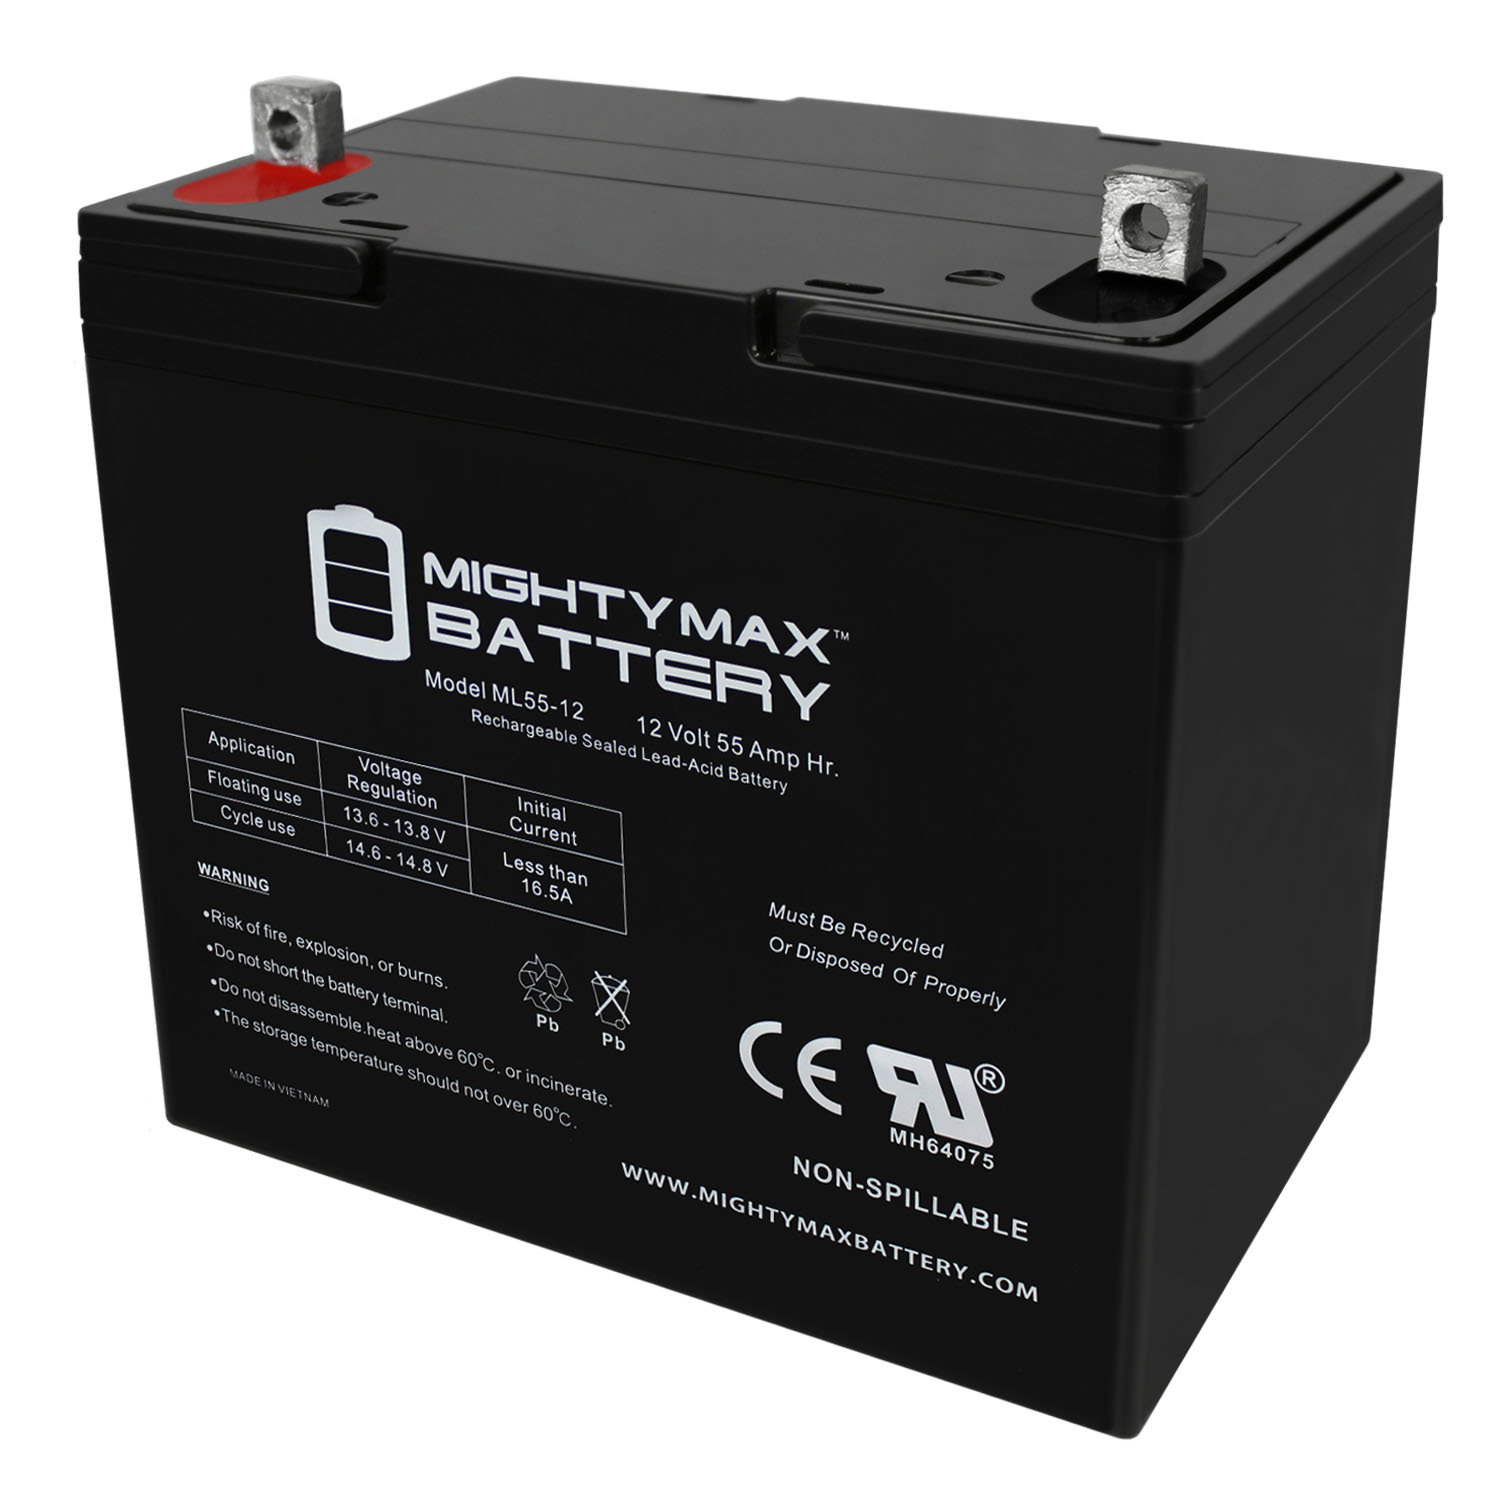 12V 55Ah Battery Replacement for Pride Jazzy Pwt Seat Patriot